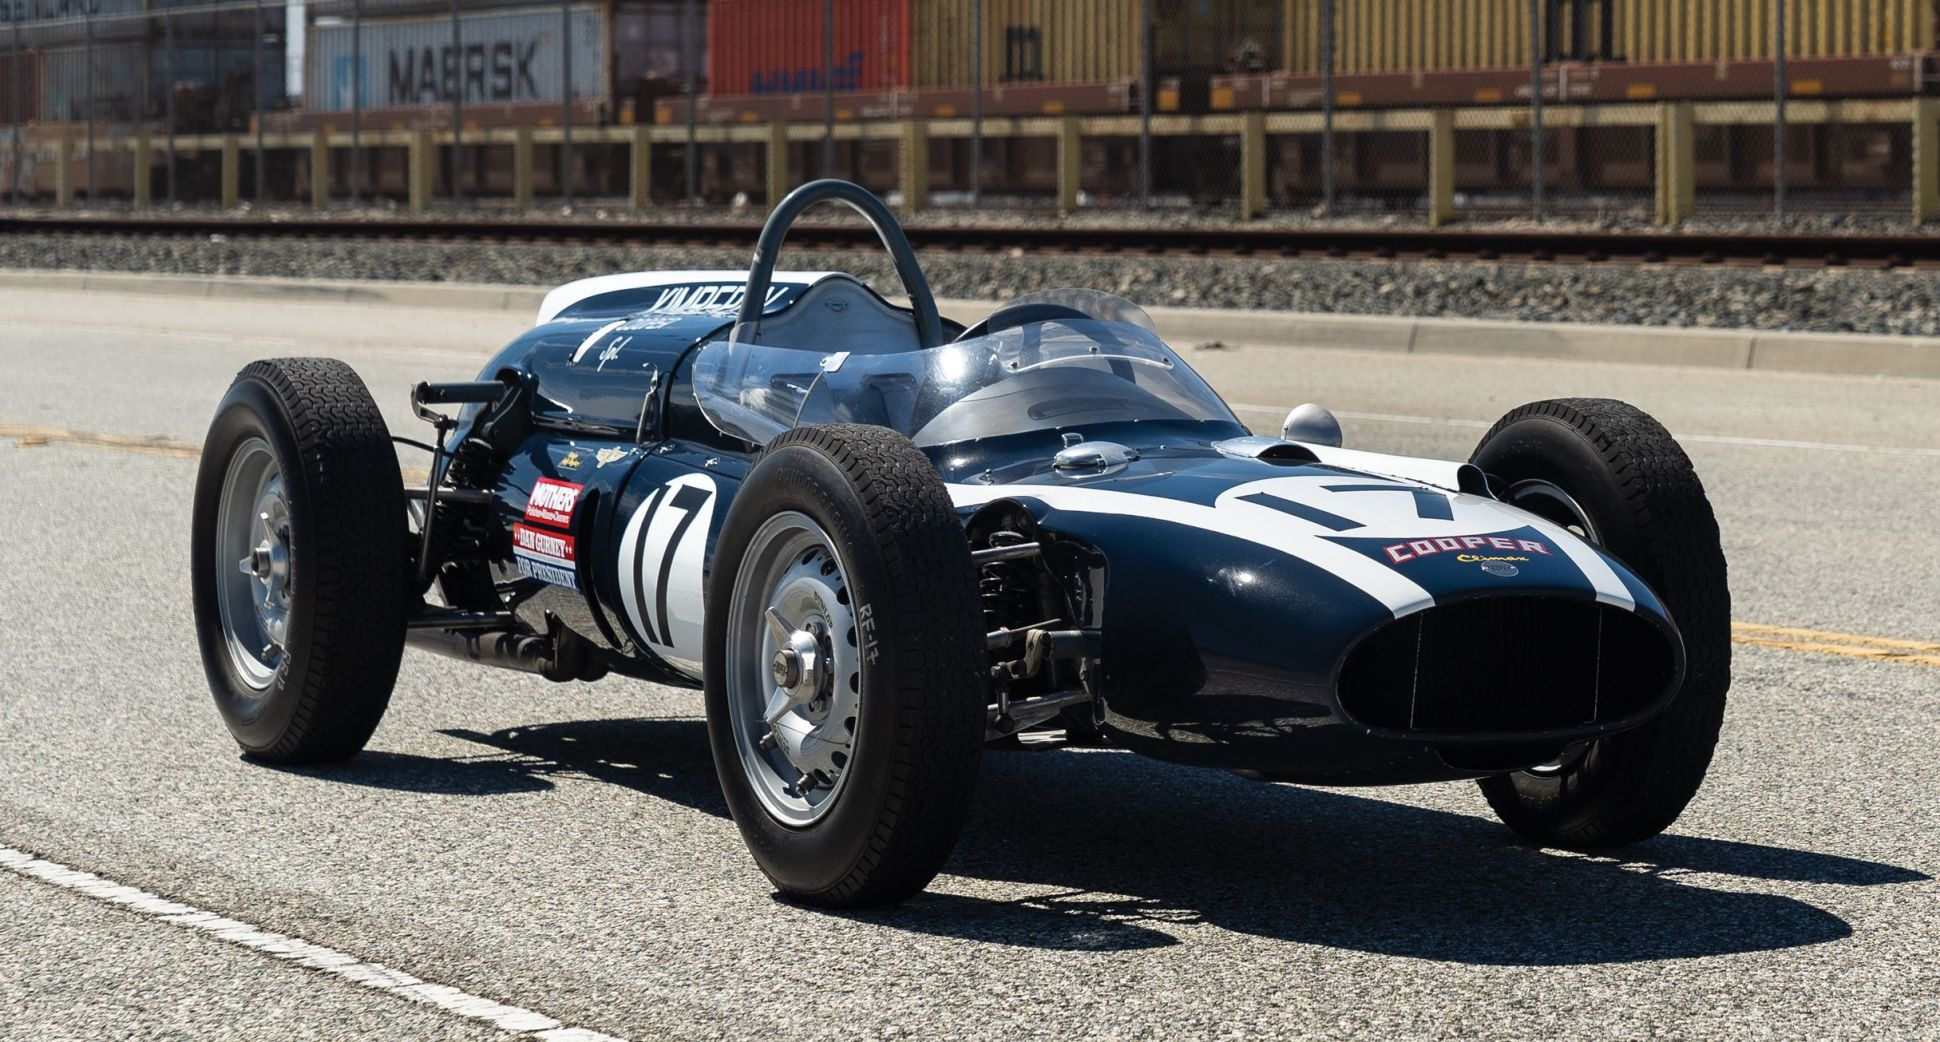 1961 Cooper Climax T54